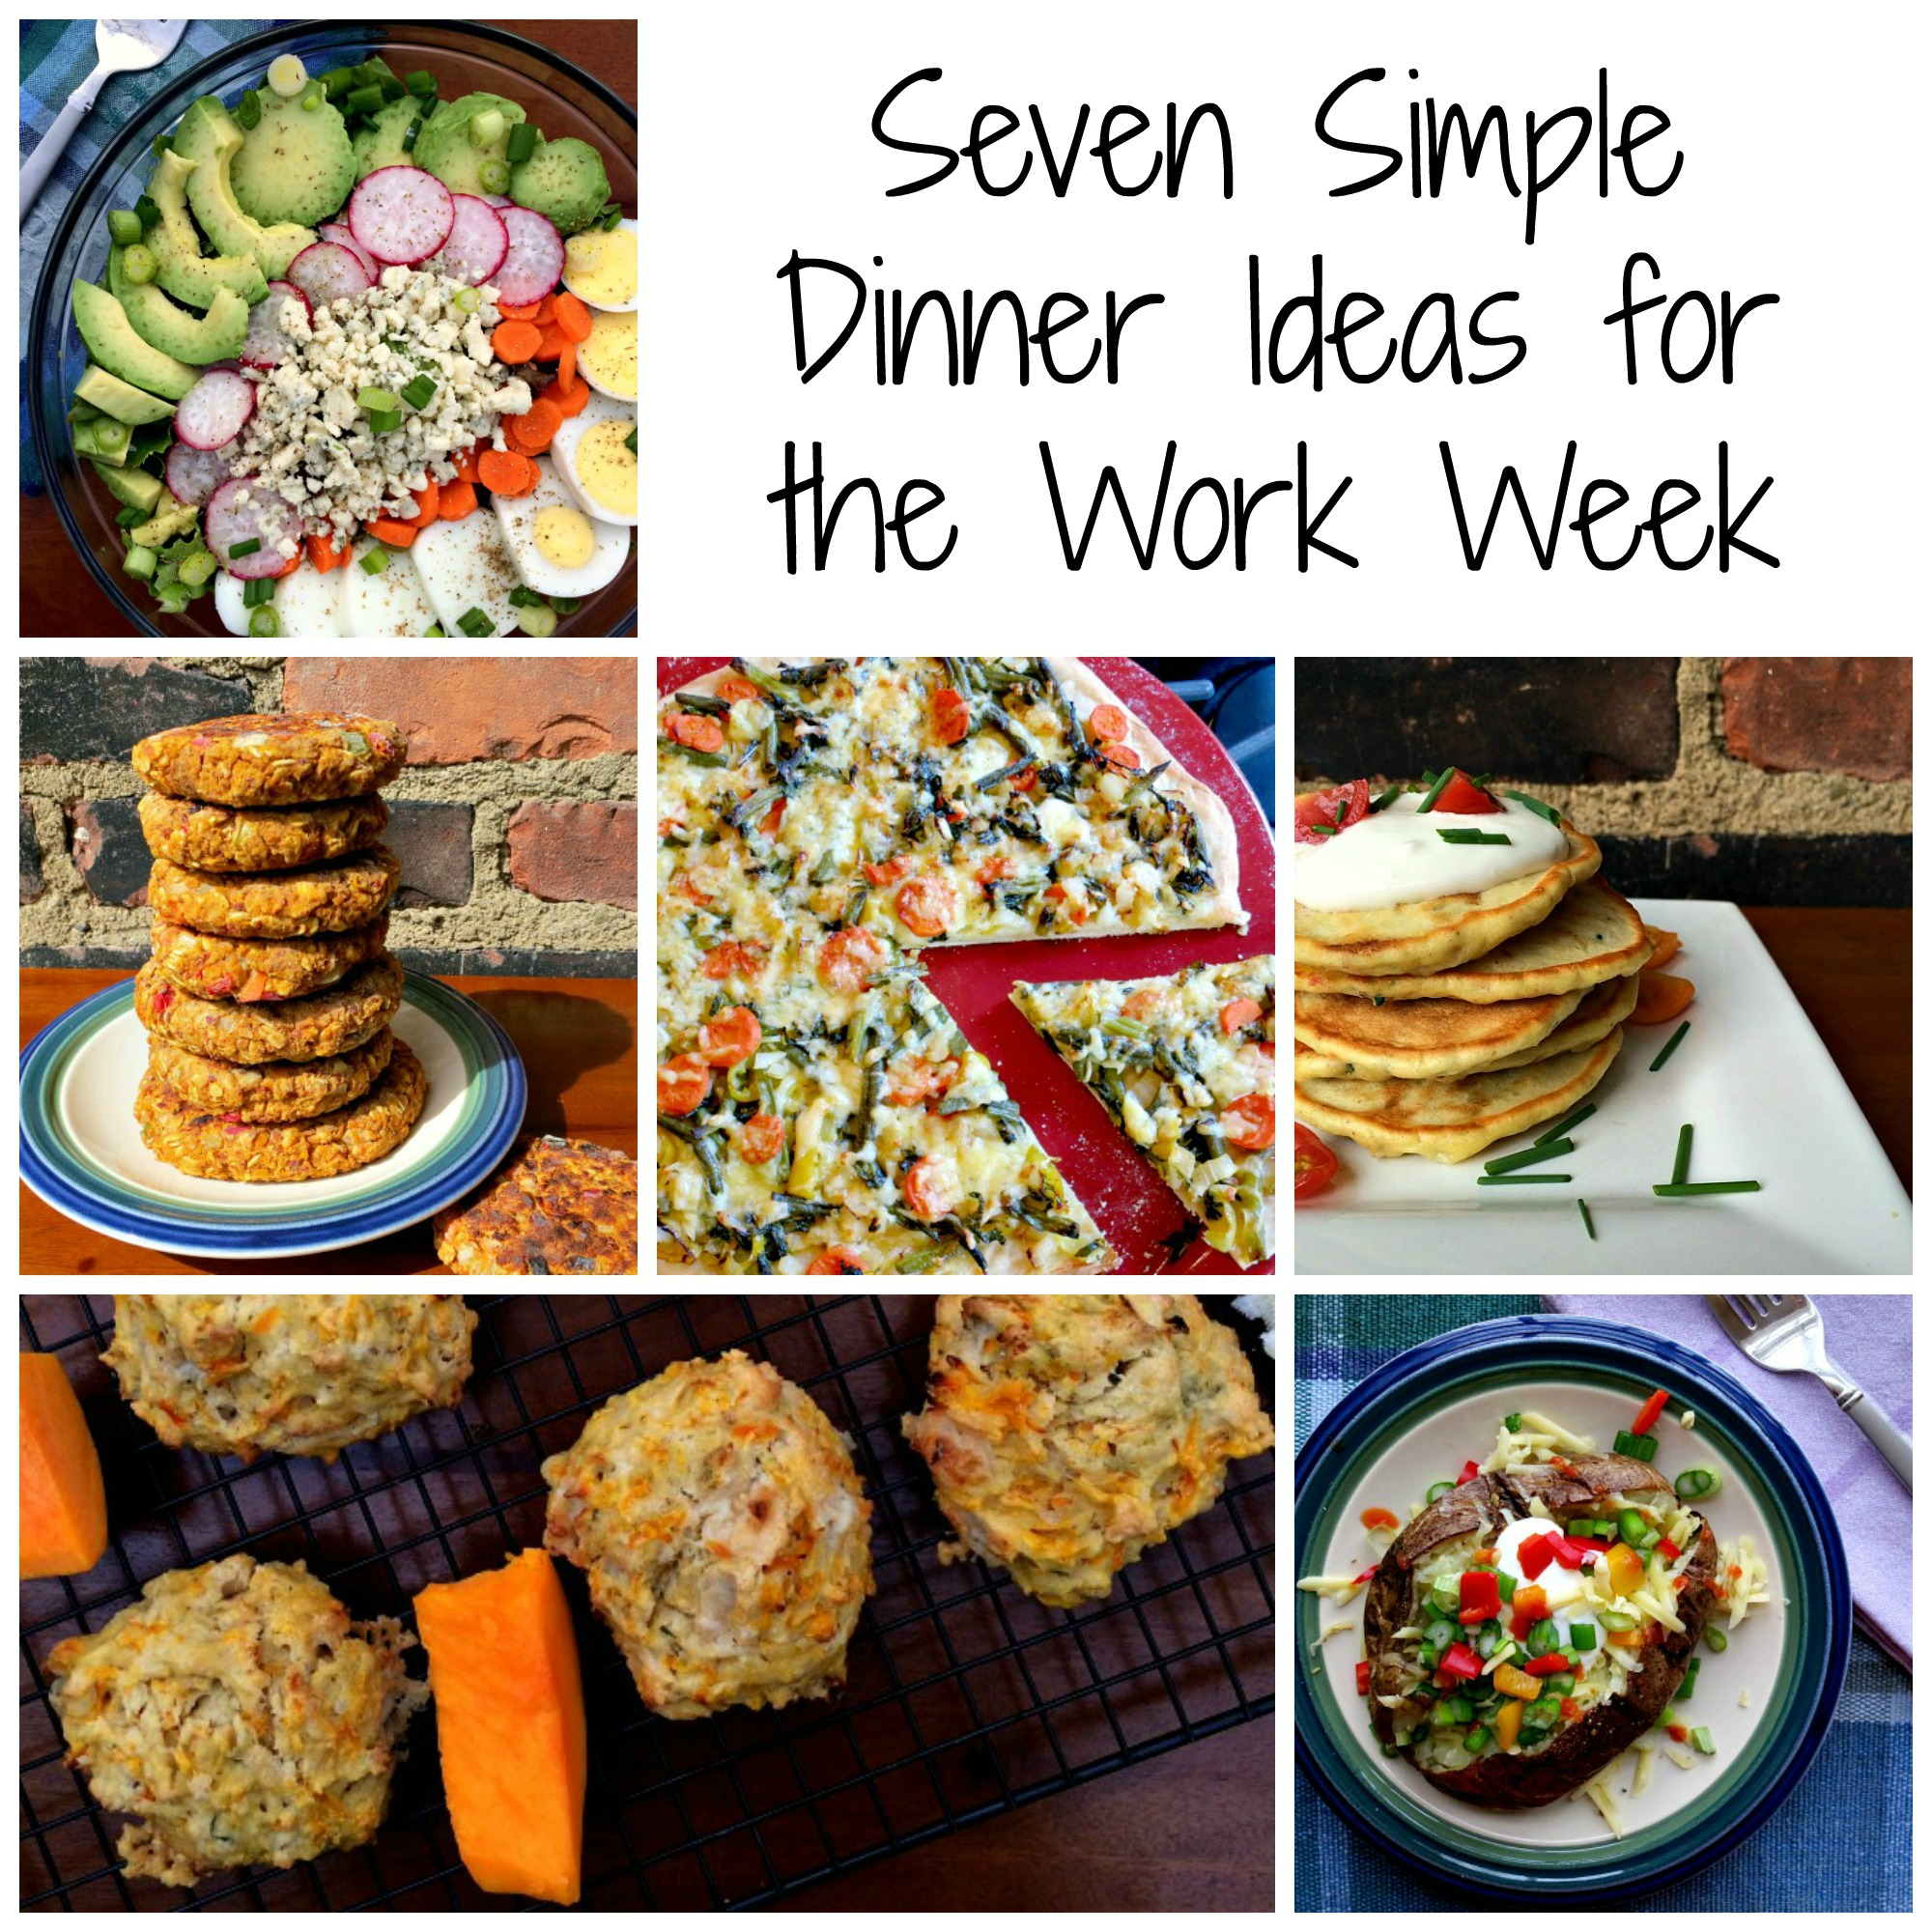 Seven Simple Dinner Tips for the Work Week Collage